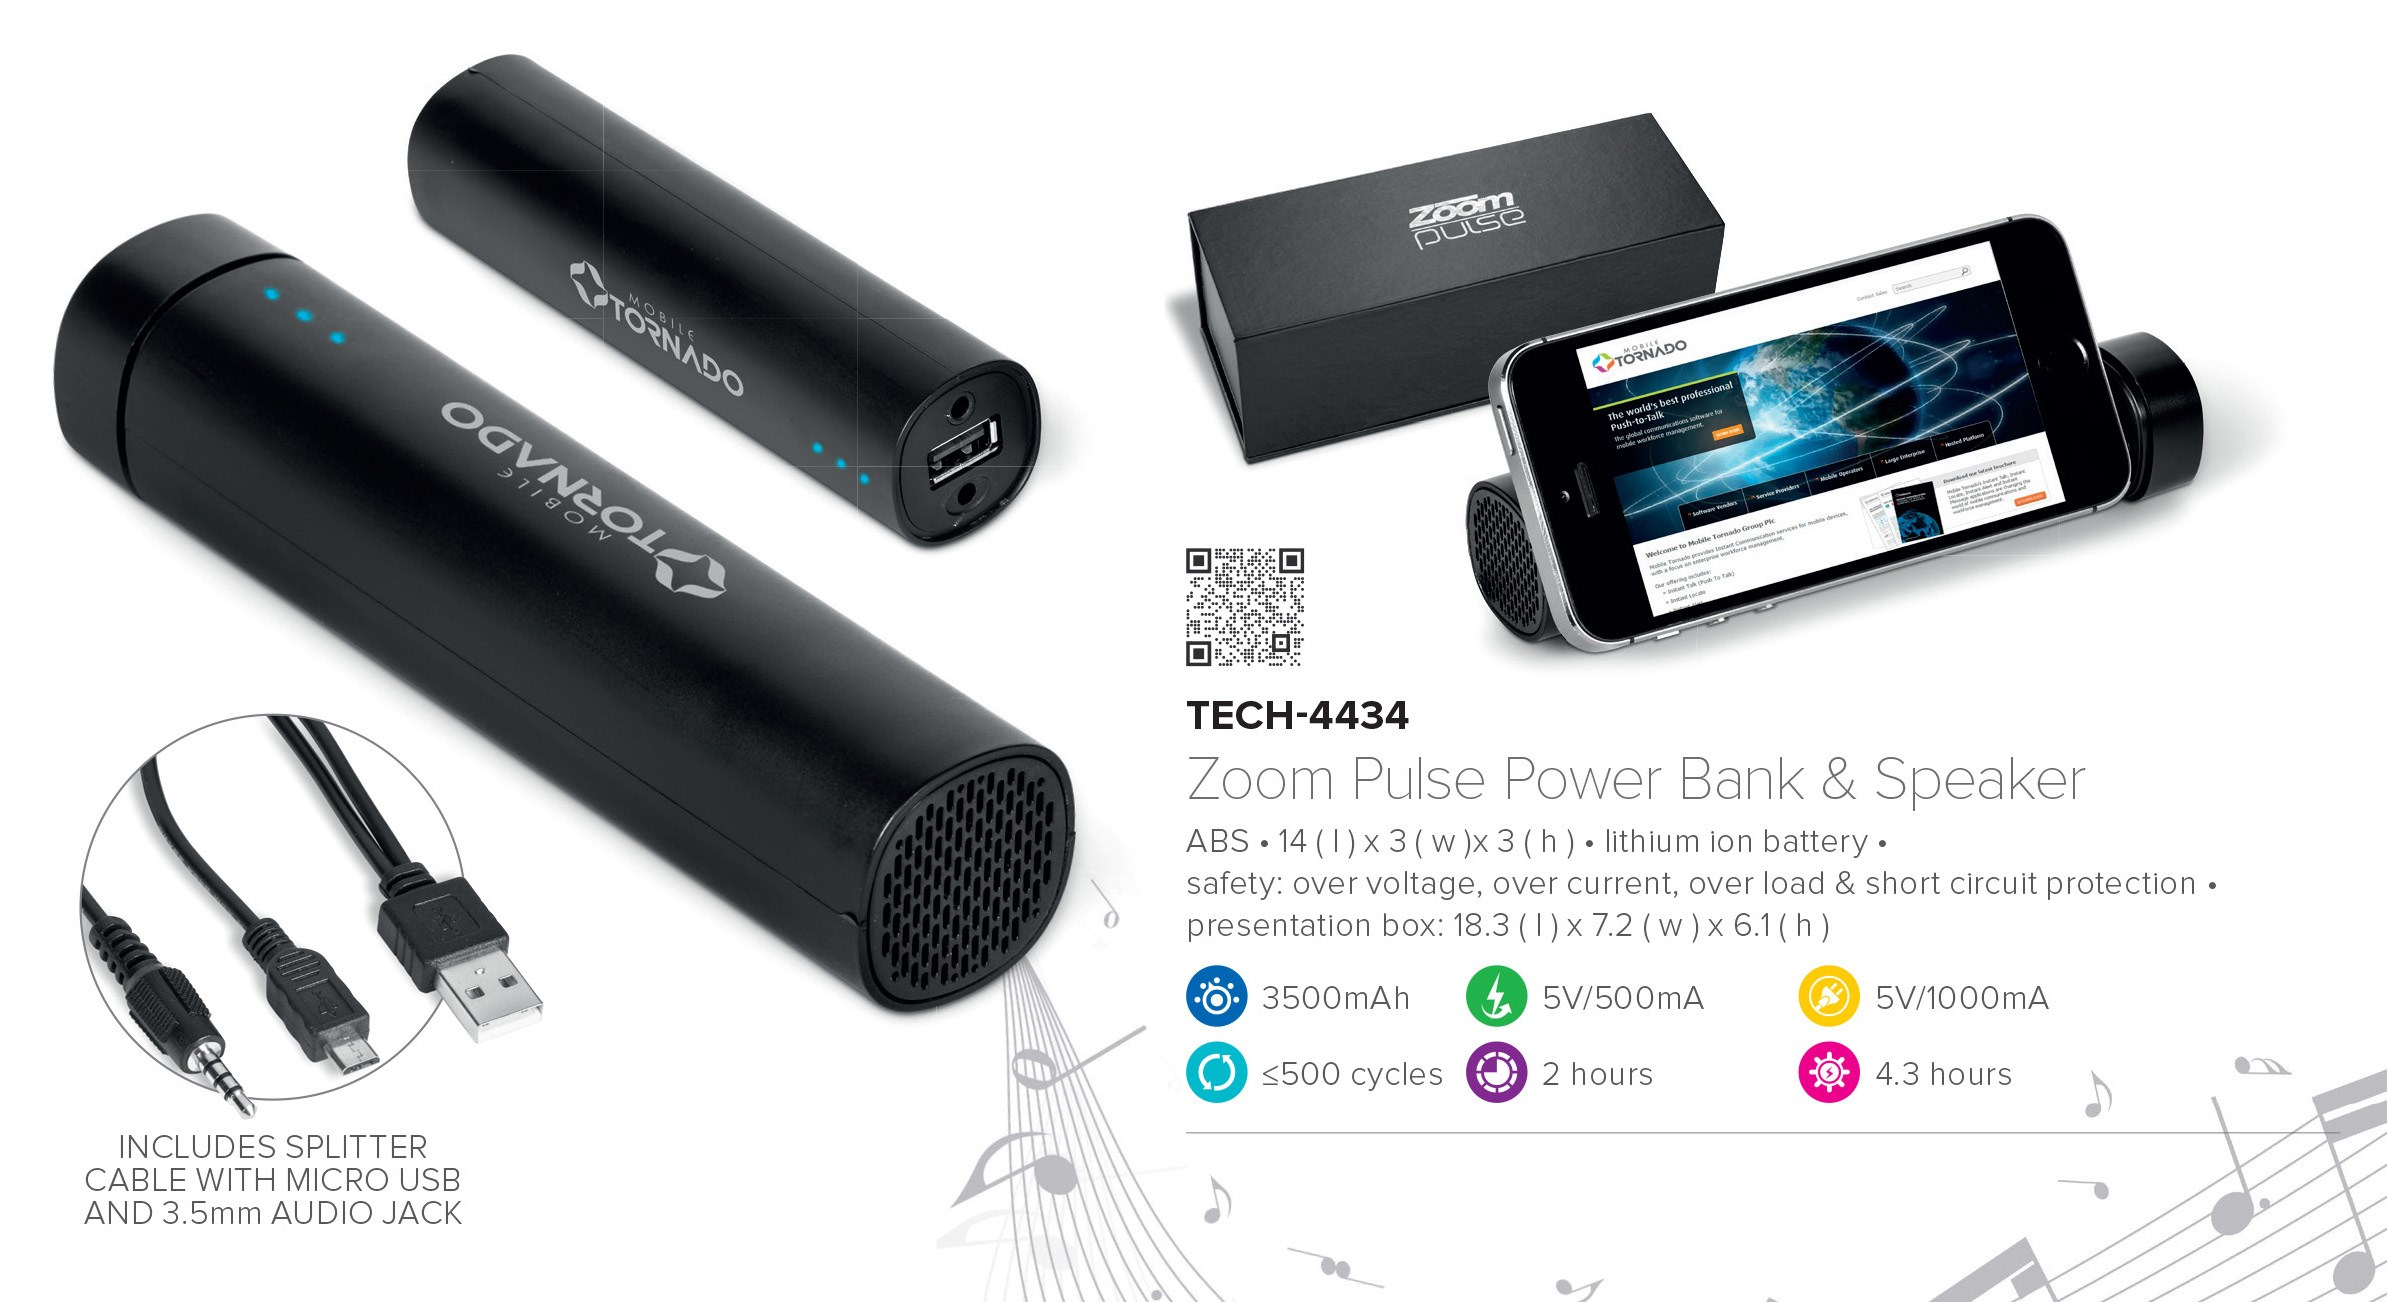 Zoom pulse speaker Power bank